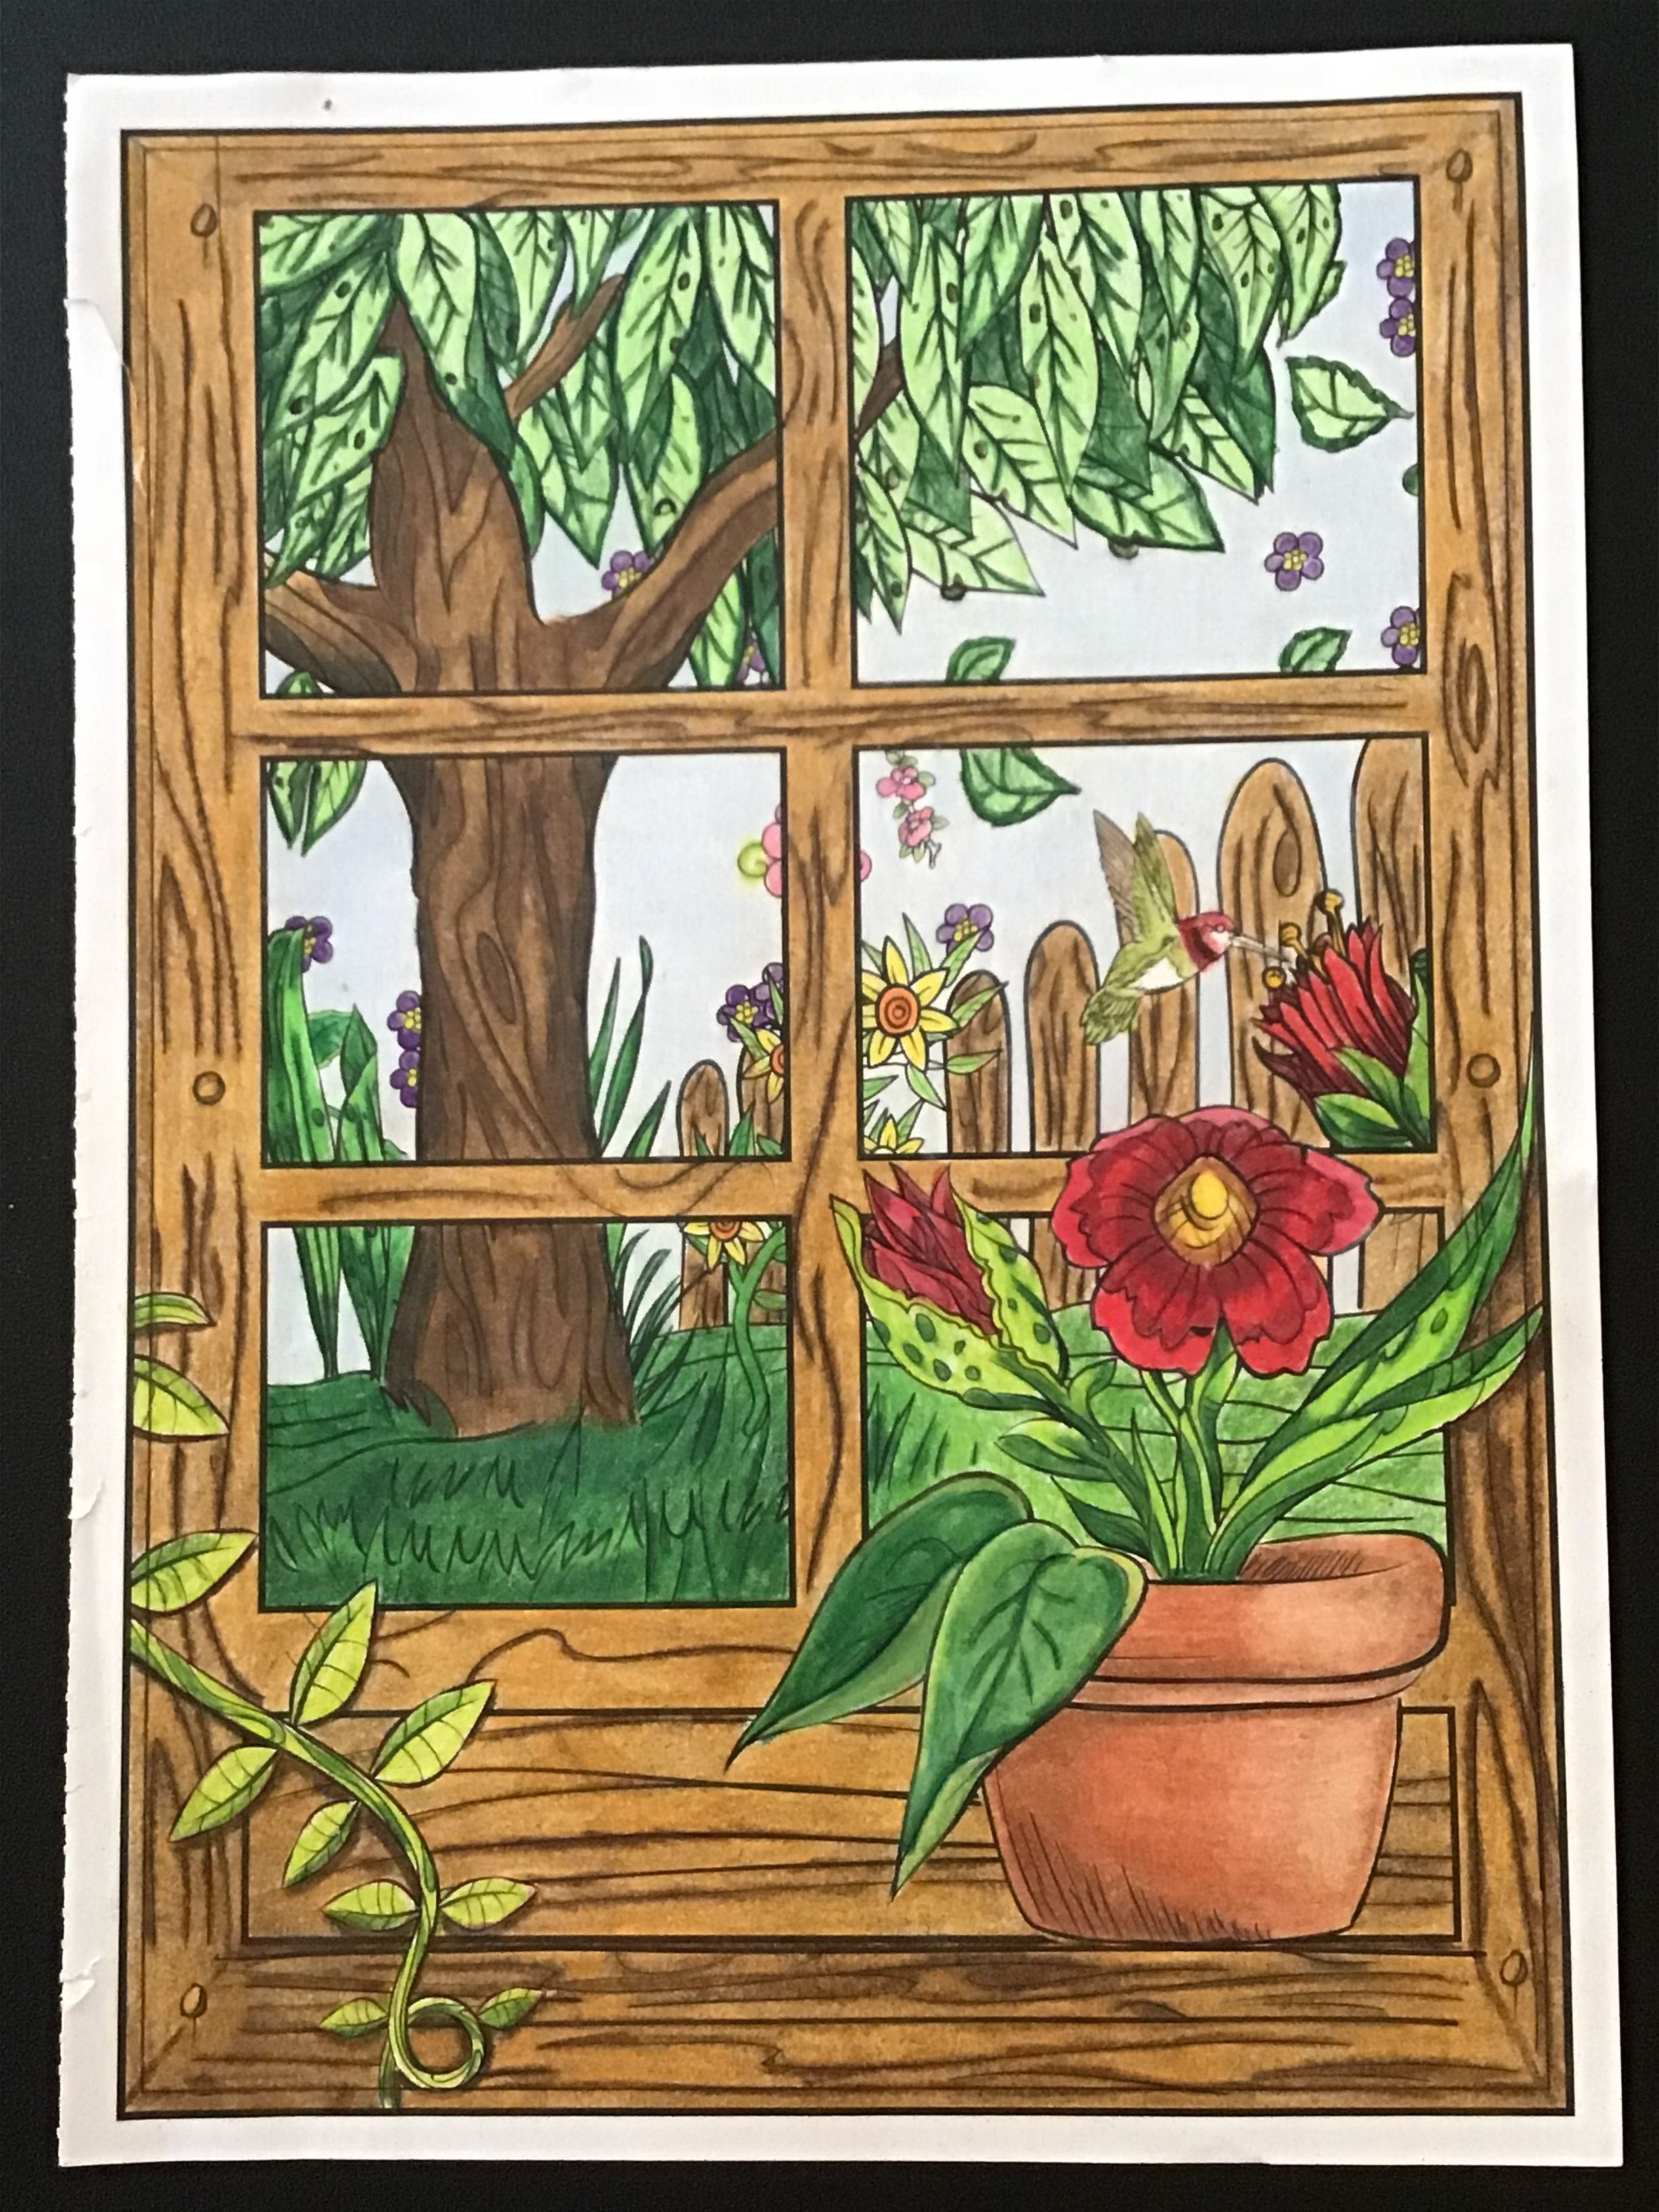 From Timeless Creations Magical Garden Coloring Book